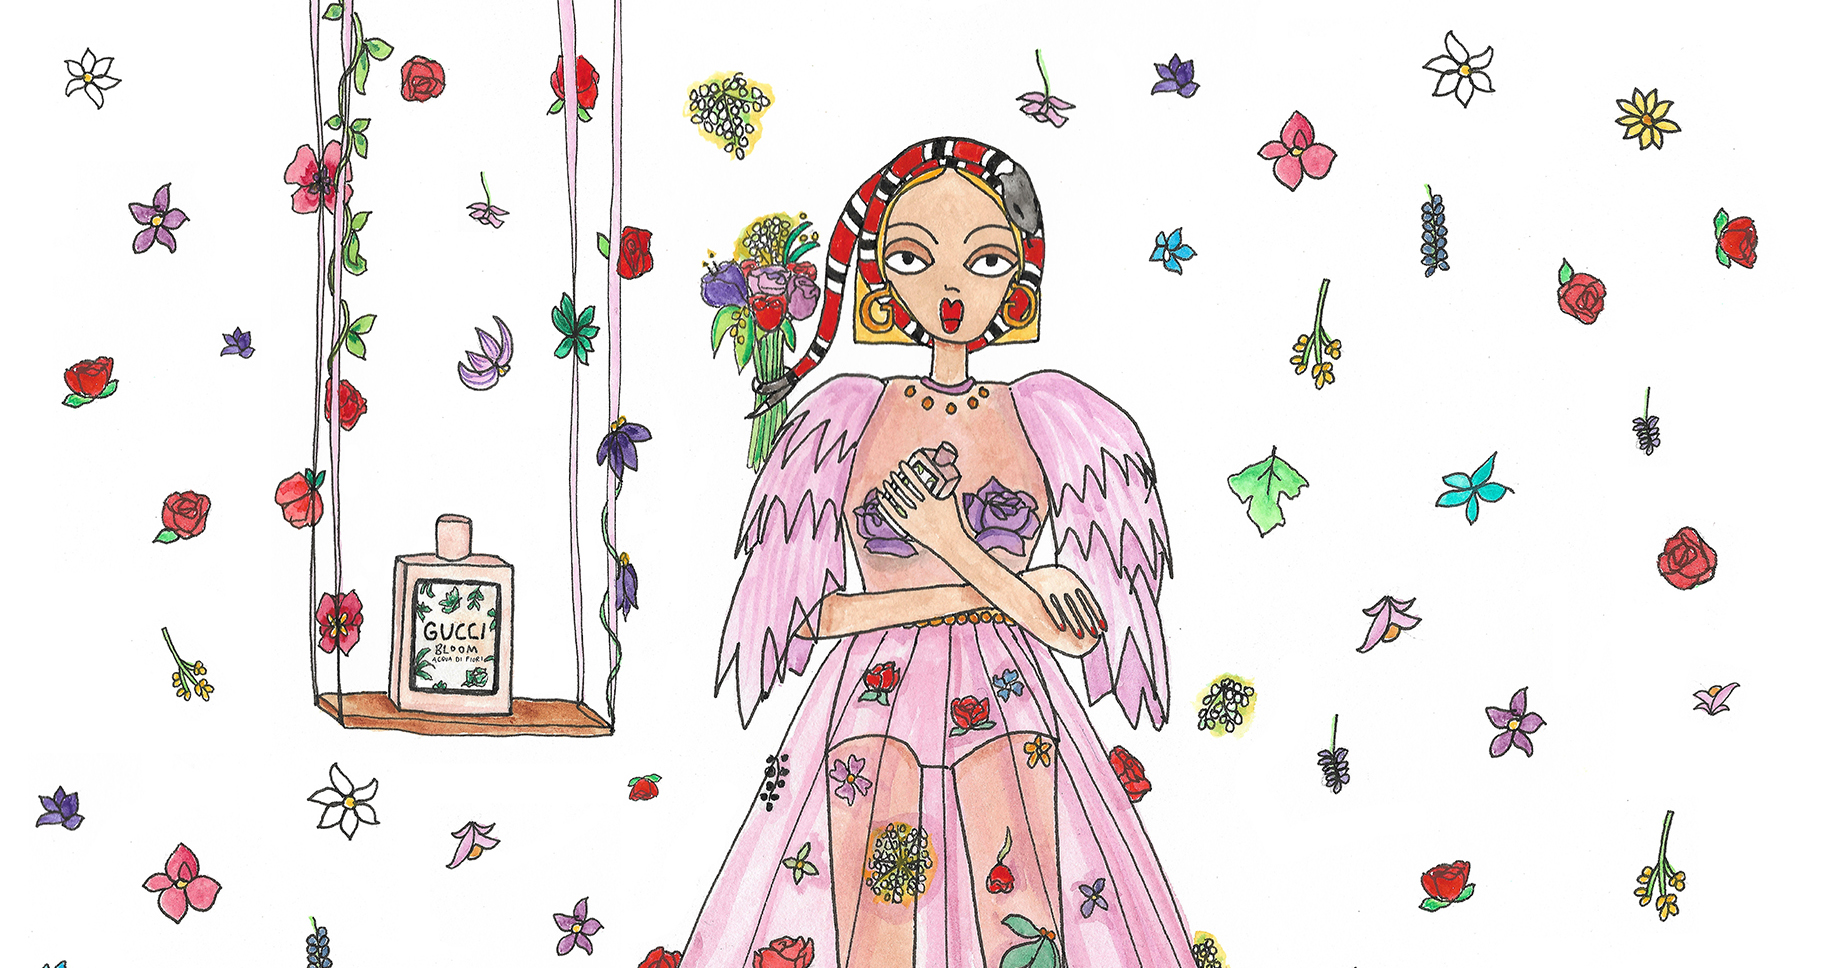 Gucci Blooms in Latest Female Instagram Illustration Campaign